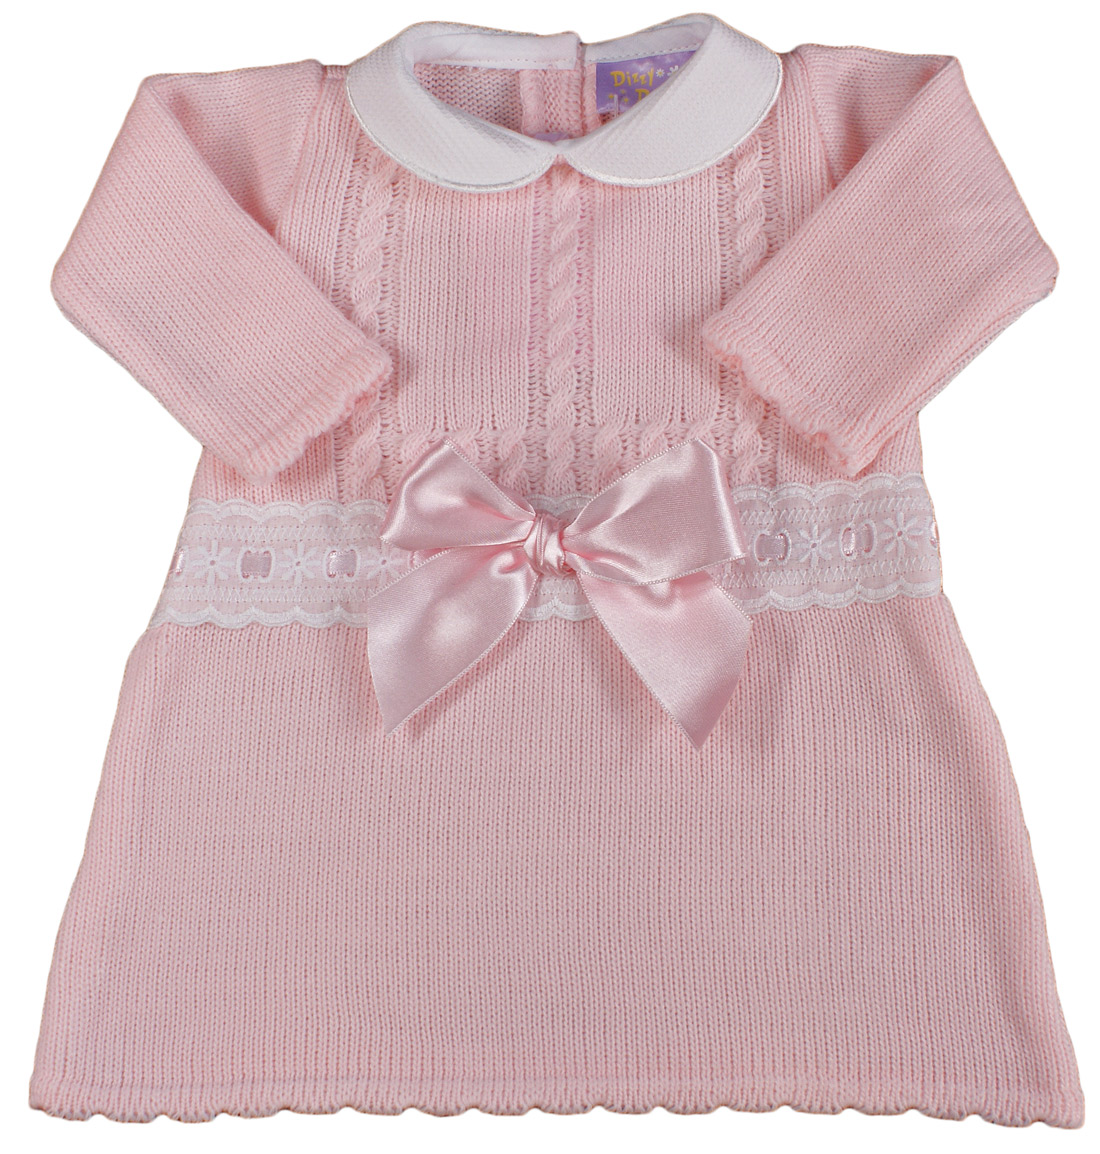 Baby Girl Dress Bow Knitted Spanish Style Pink Ebay